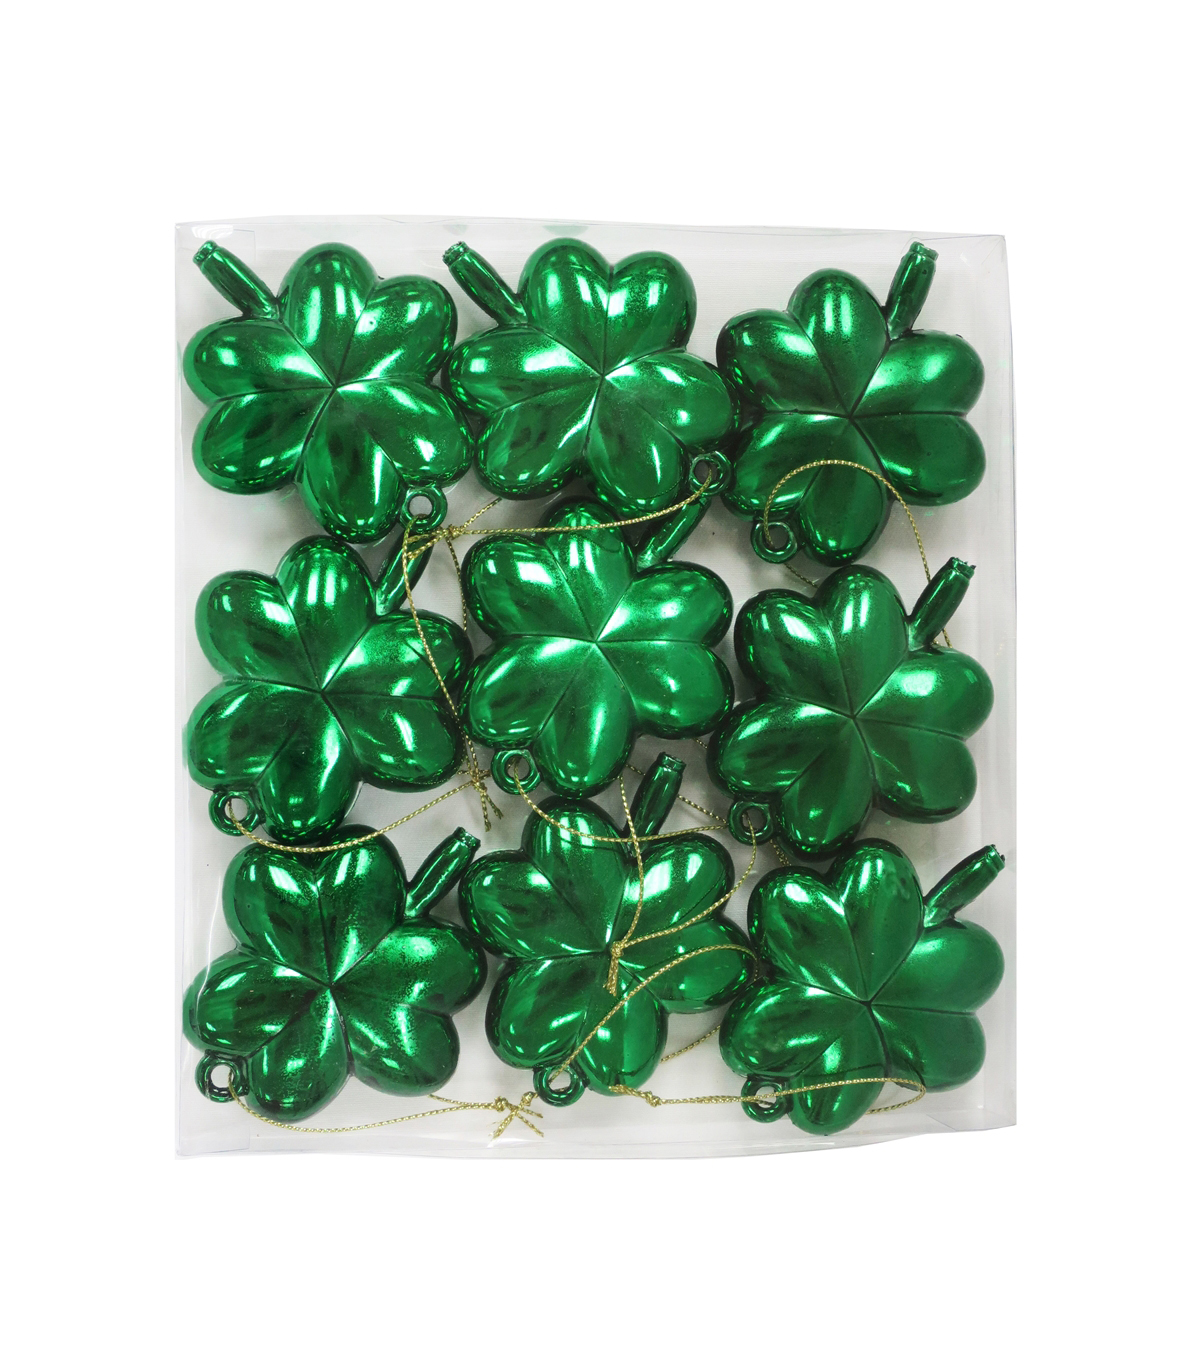 St. Patrick\u0027s Day Decor 9 pk 3\u0027\u0027 Shamrock Ornaments-Green